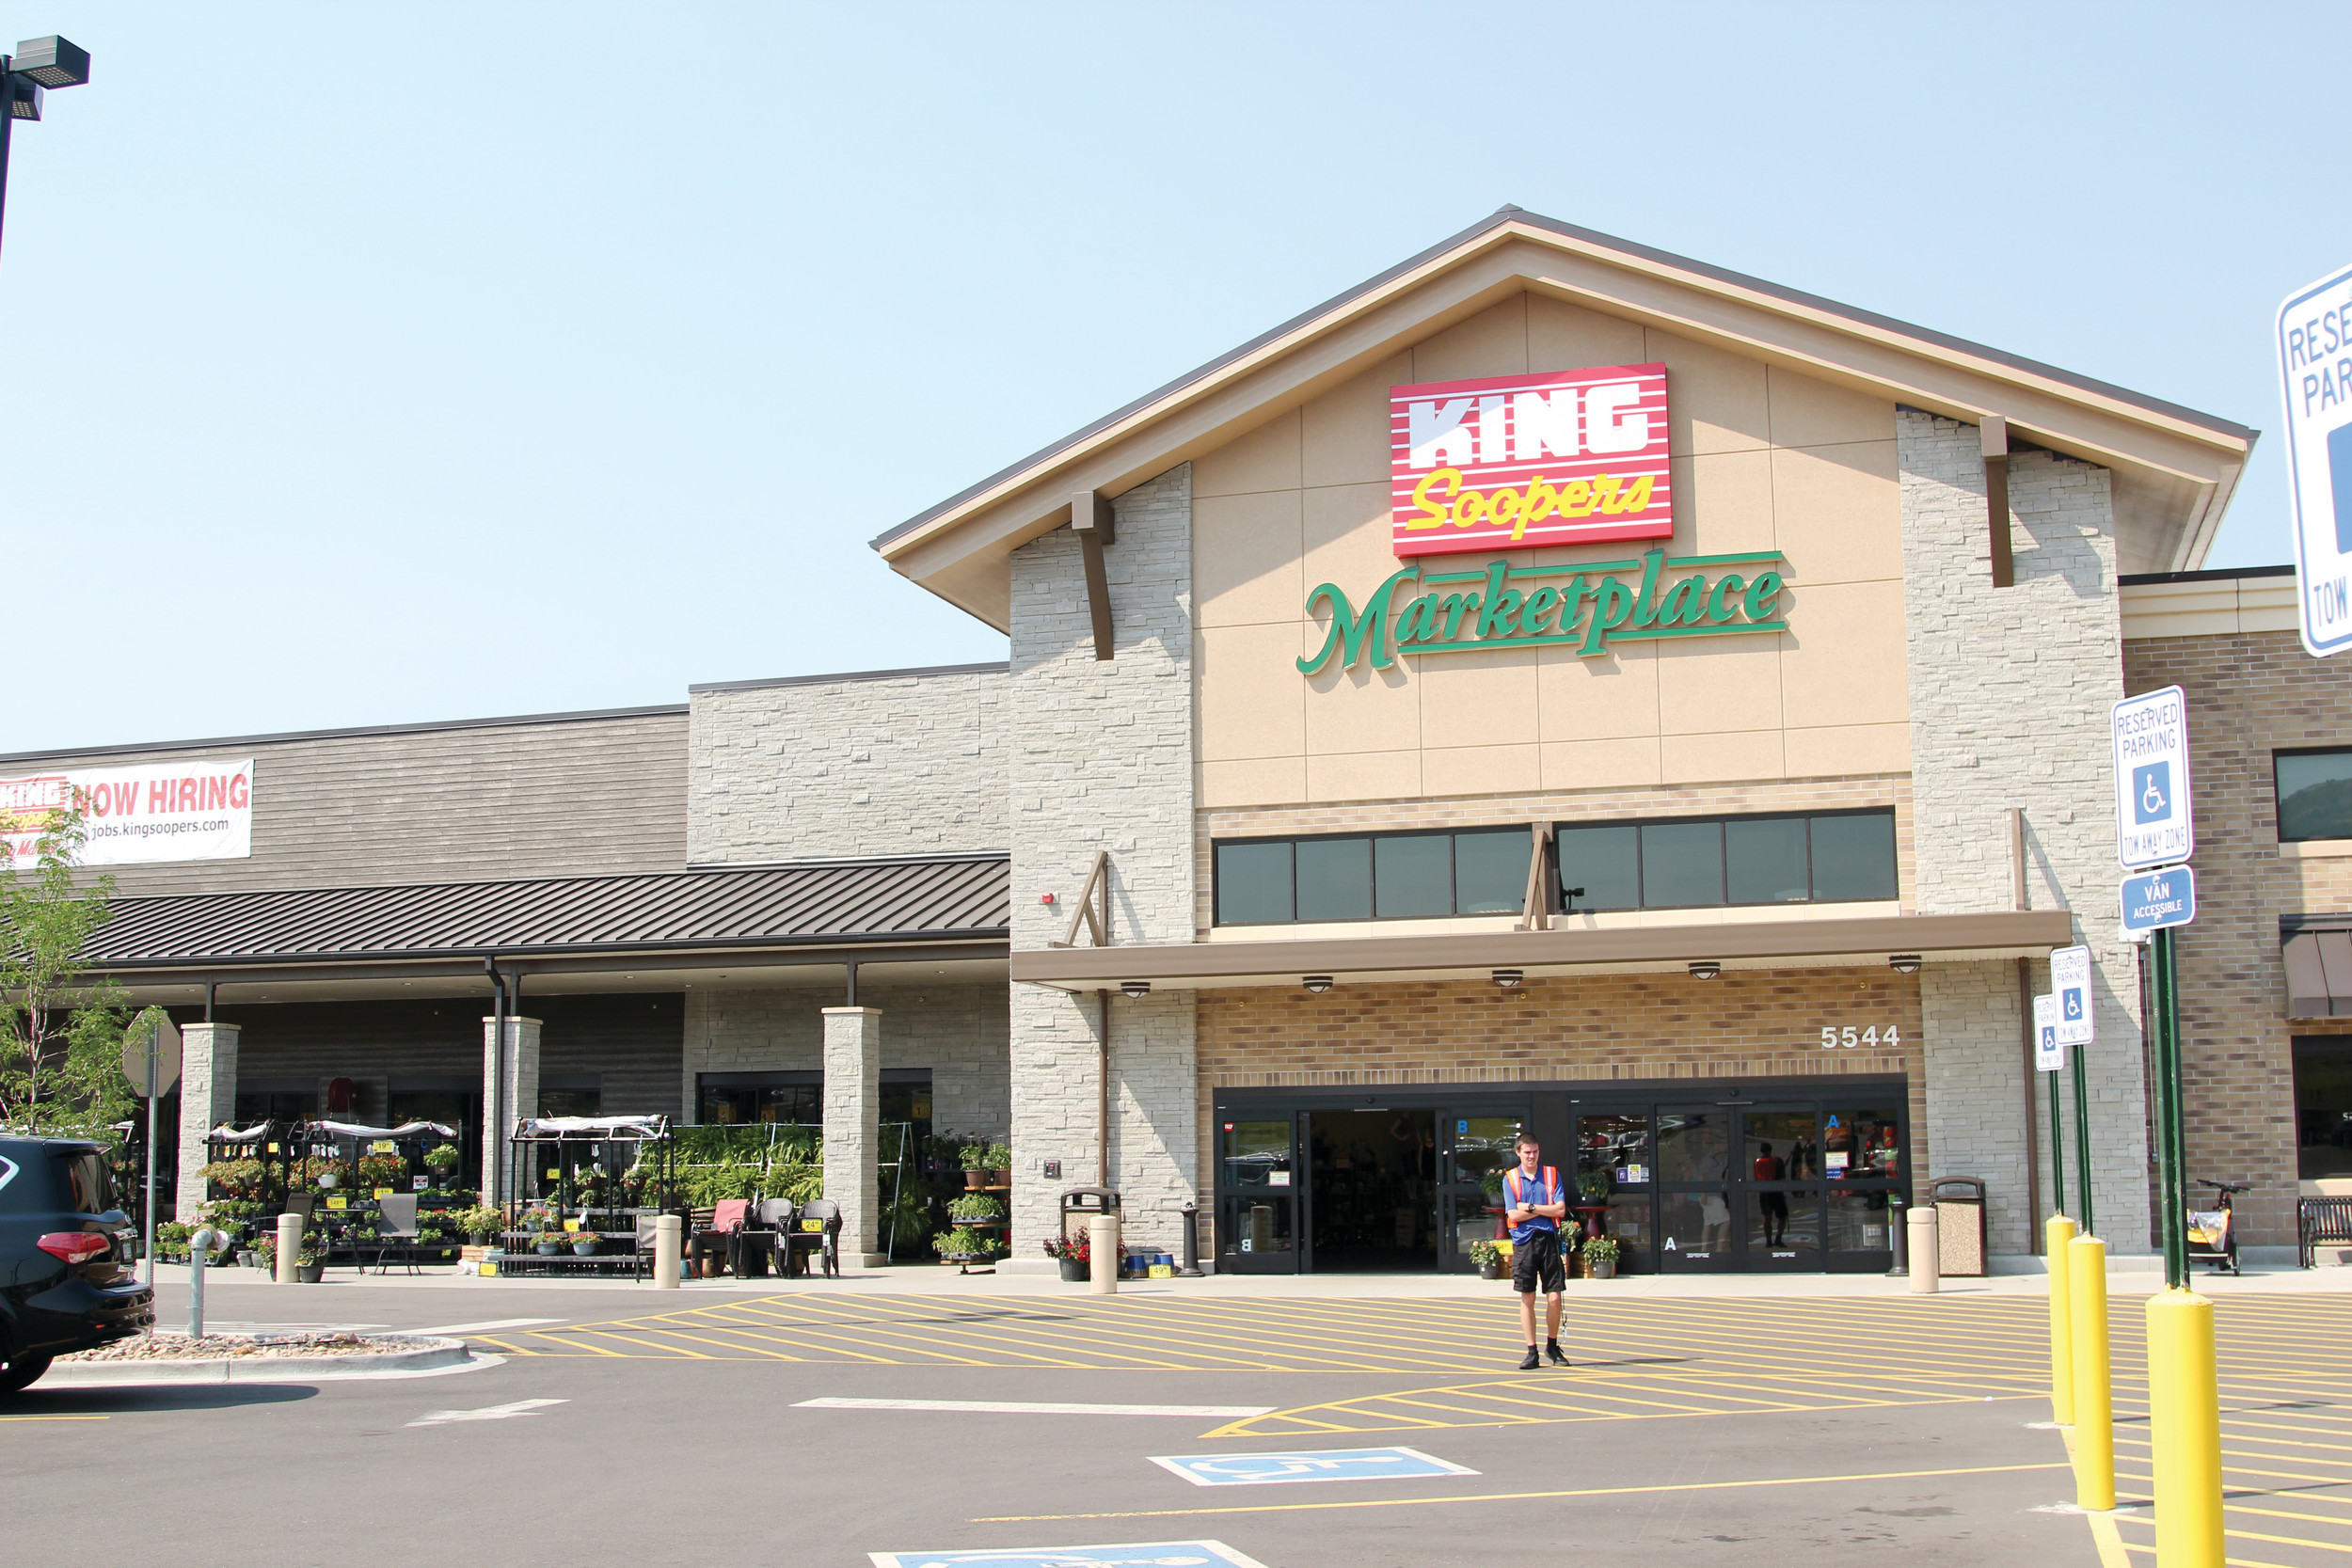 A King Soopers Marketplace Is Located At 5544 Promenade Parkway In Castle  Rock. The Store